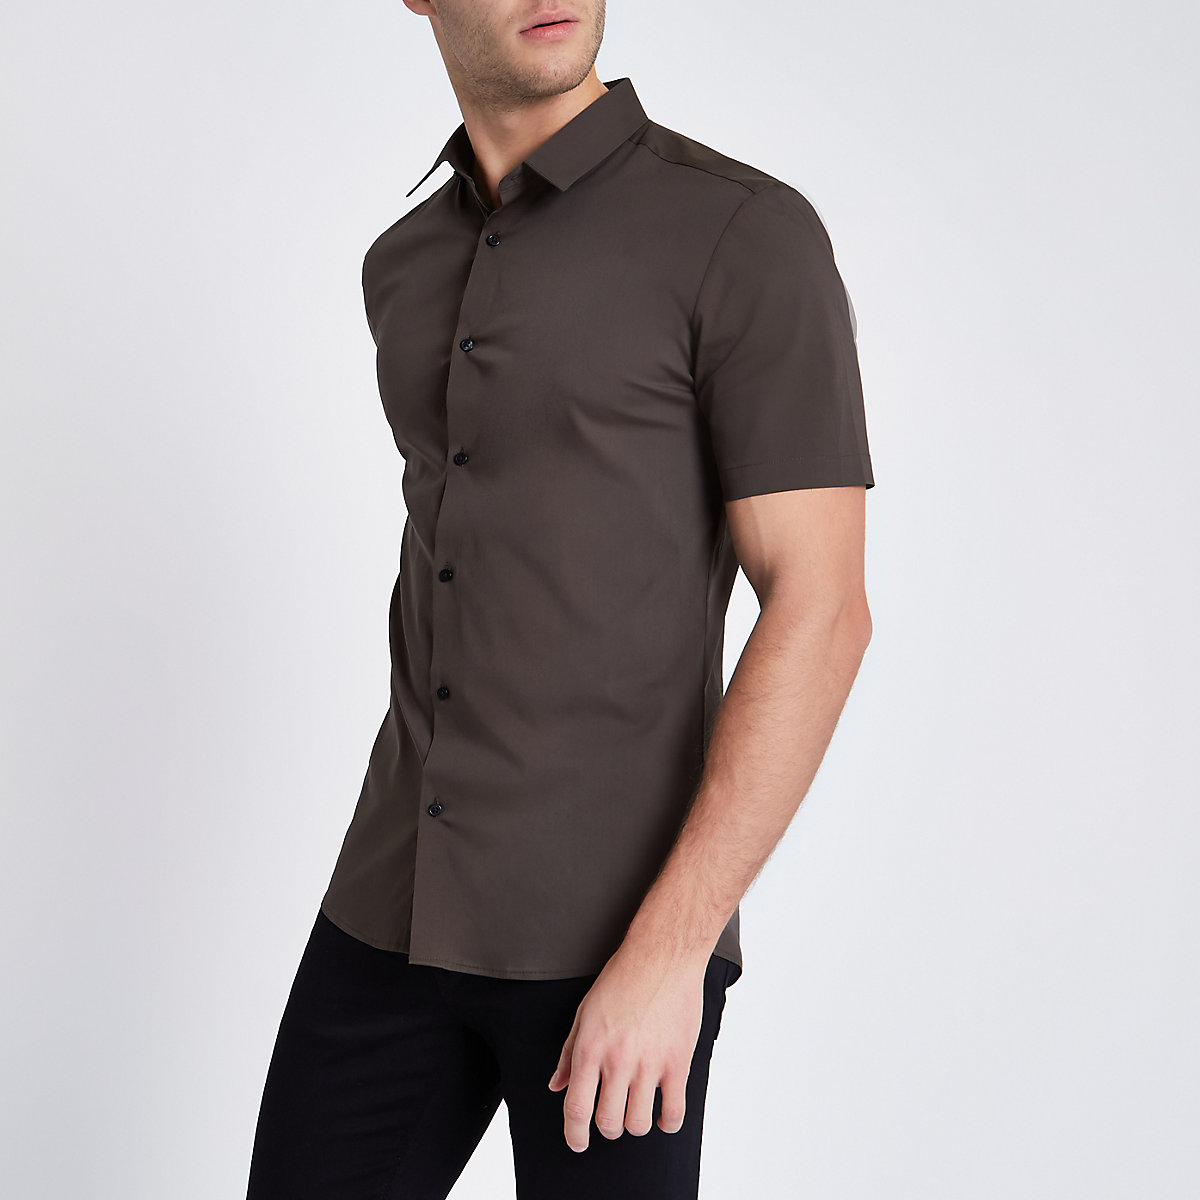 Khaki green short sleeve muscle fit shirt